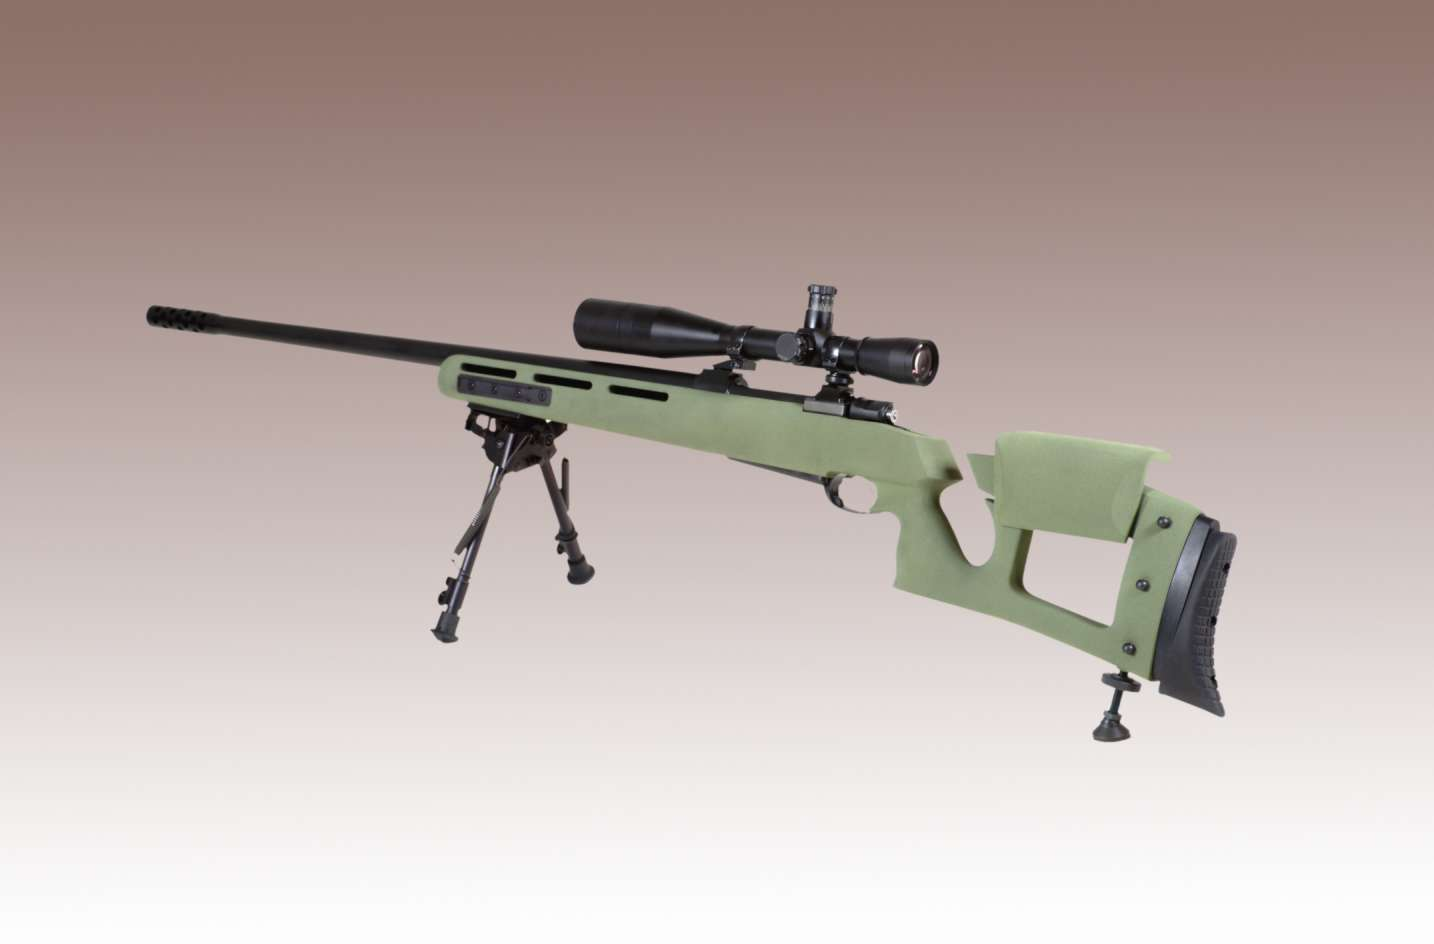 Gol Sniper Magnum Image Military Personnel Arms Mod DB